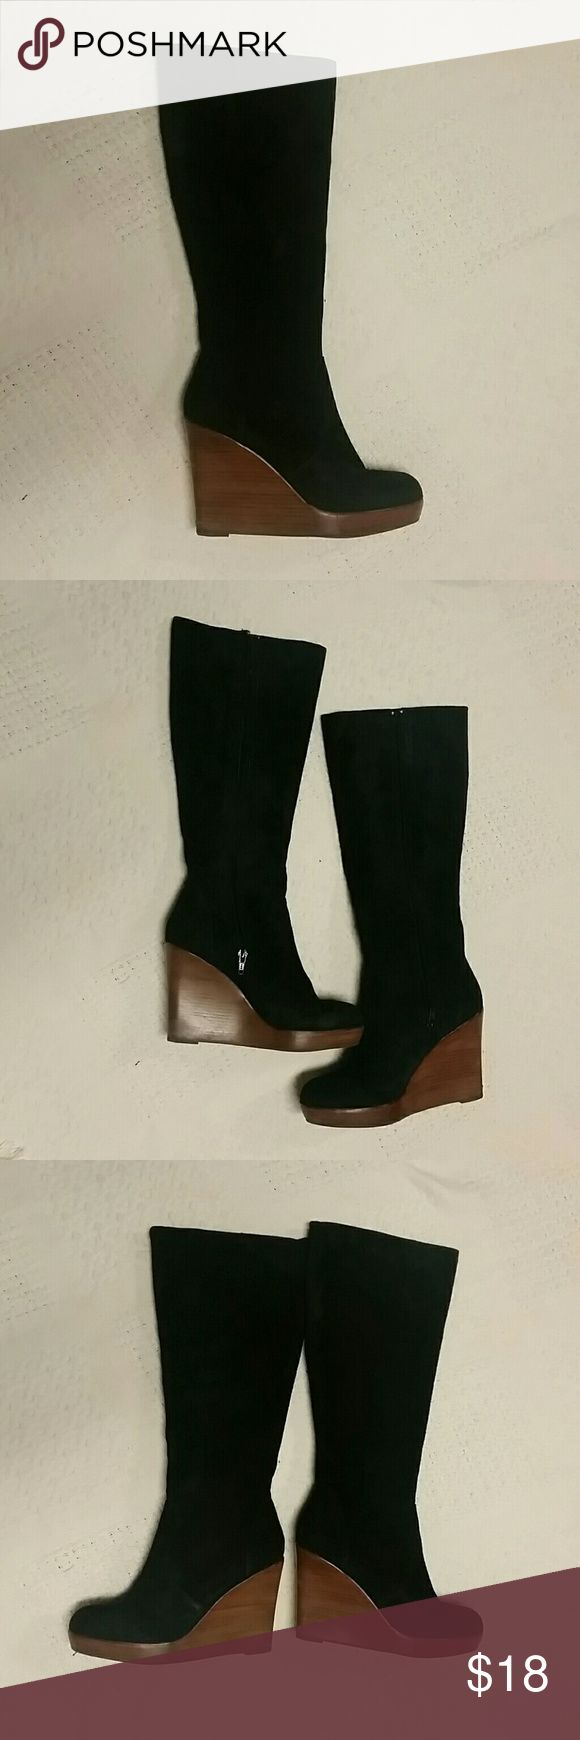 Steve Madden black suede tall wedge boots Steve Madden black boots, inside zipper, 4 in wedge heel, total boot height is just under 18 1/2 inches, see pics for wear on heels Steve Madden Shoes Heeled Boots